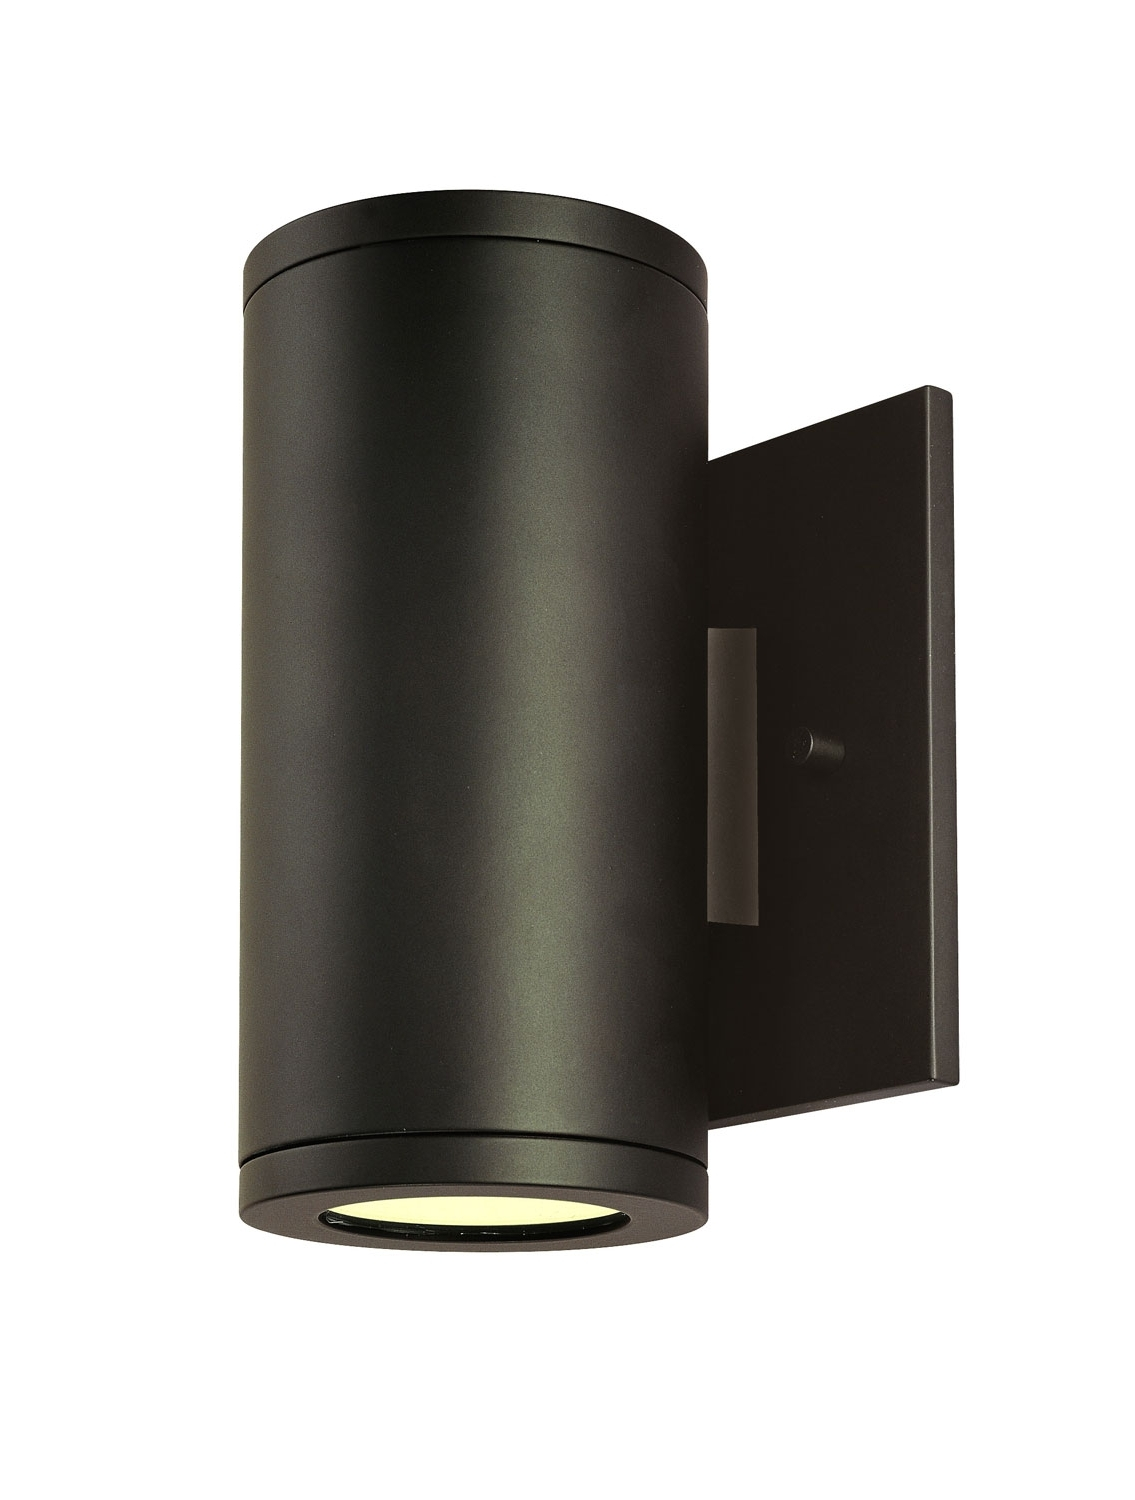 Latest Light : Black Wall Mounted Outdoor Lights White Simple Ideas Classic Intended For Outdoor Lighting And Light Fixtures (View 5 of 20)